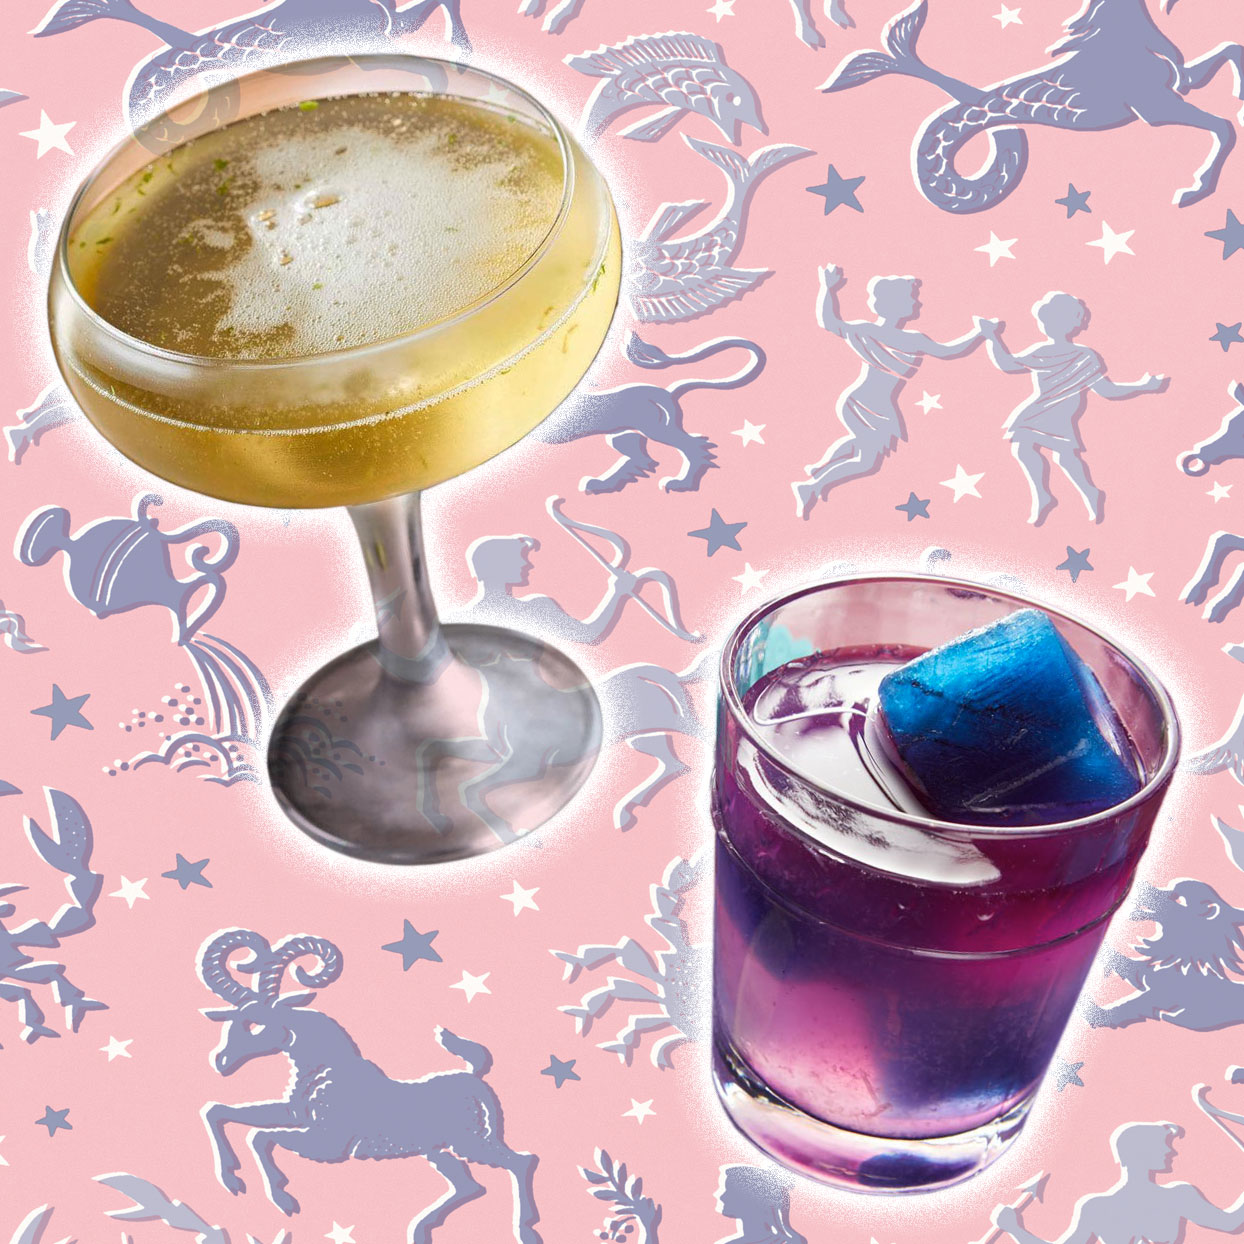 2 cocktails on an astrology graphic background